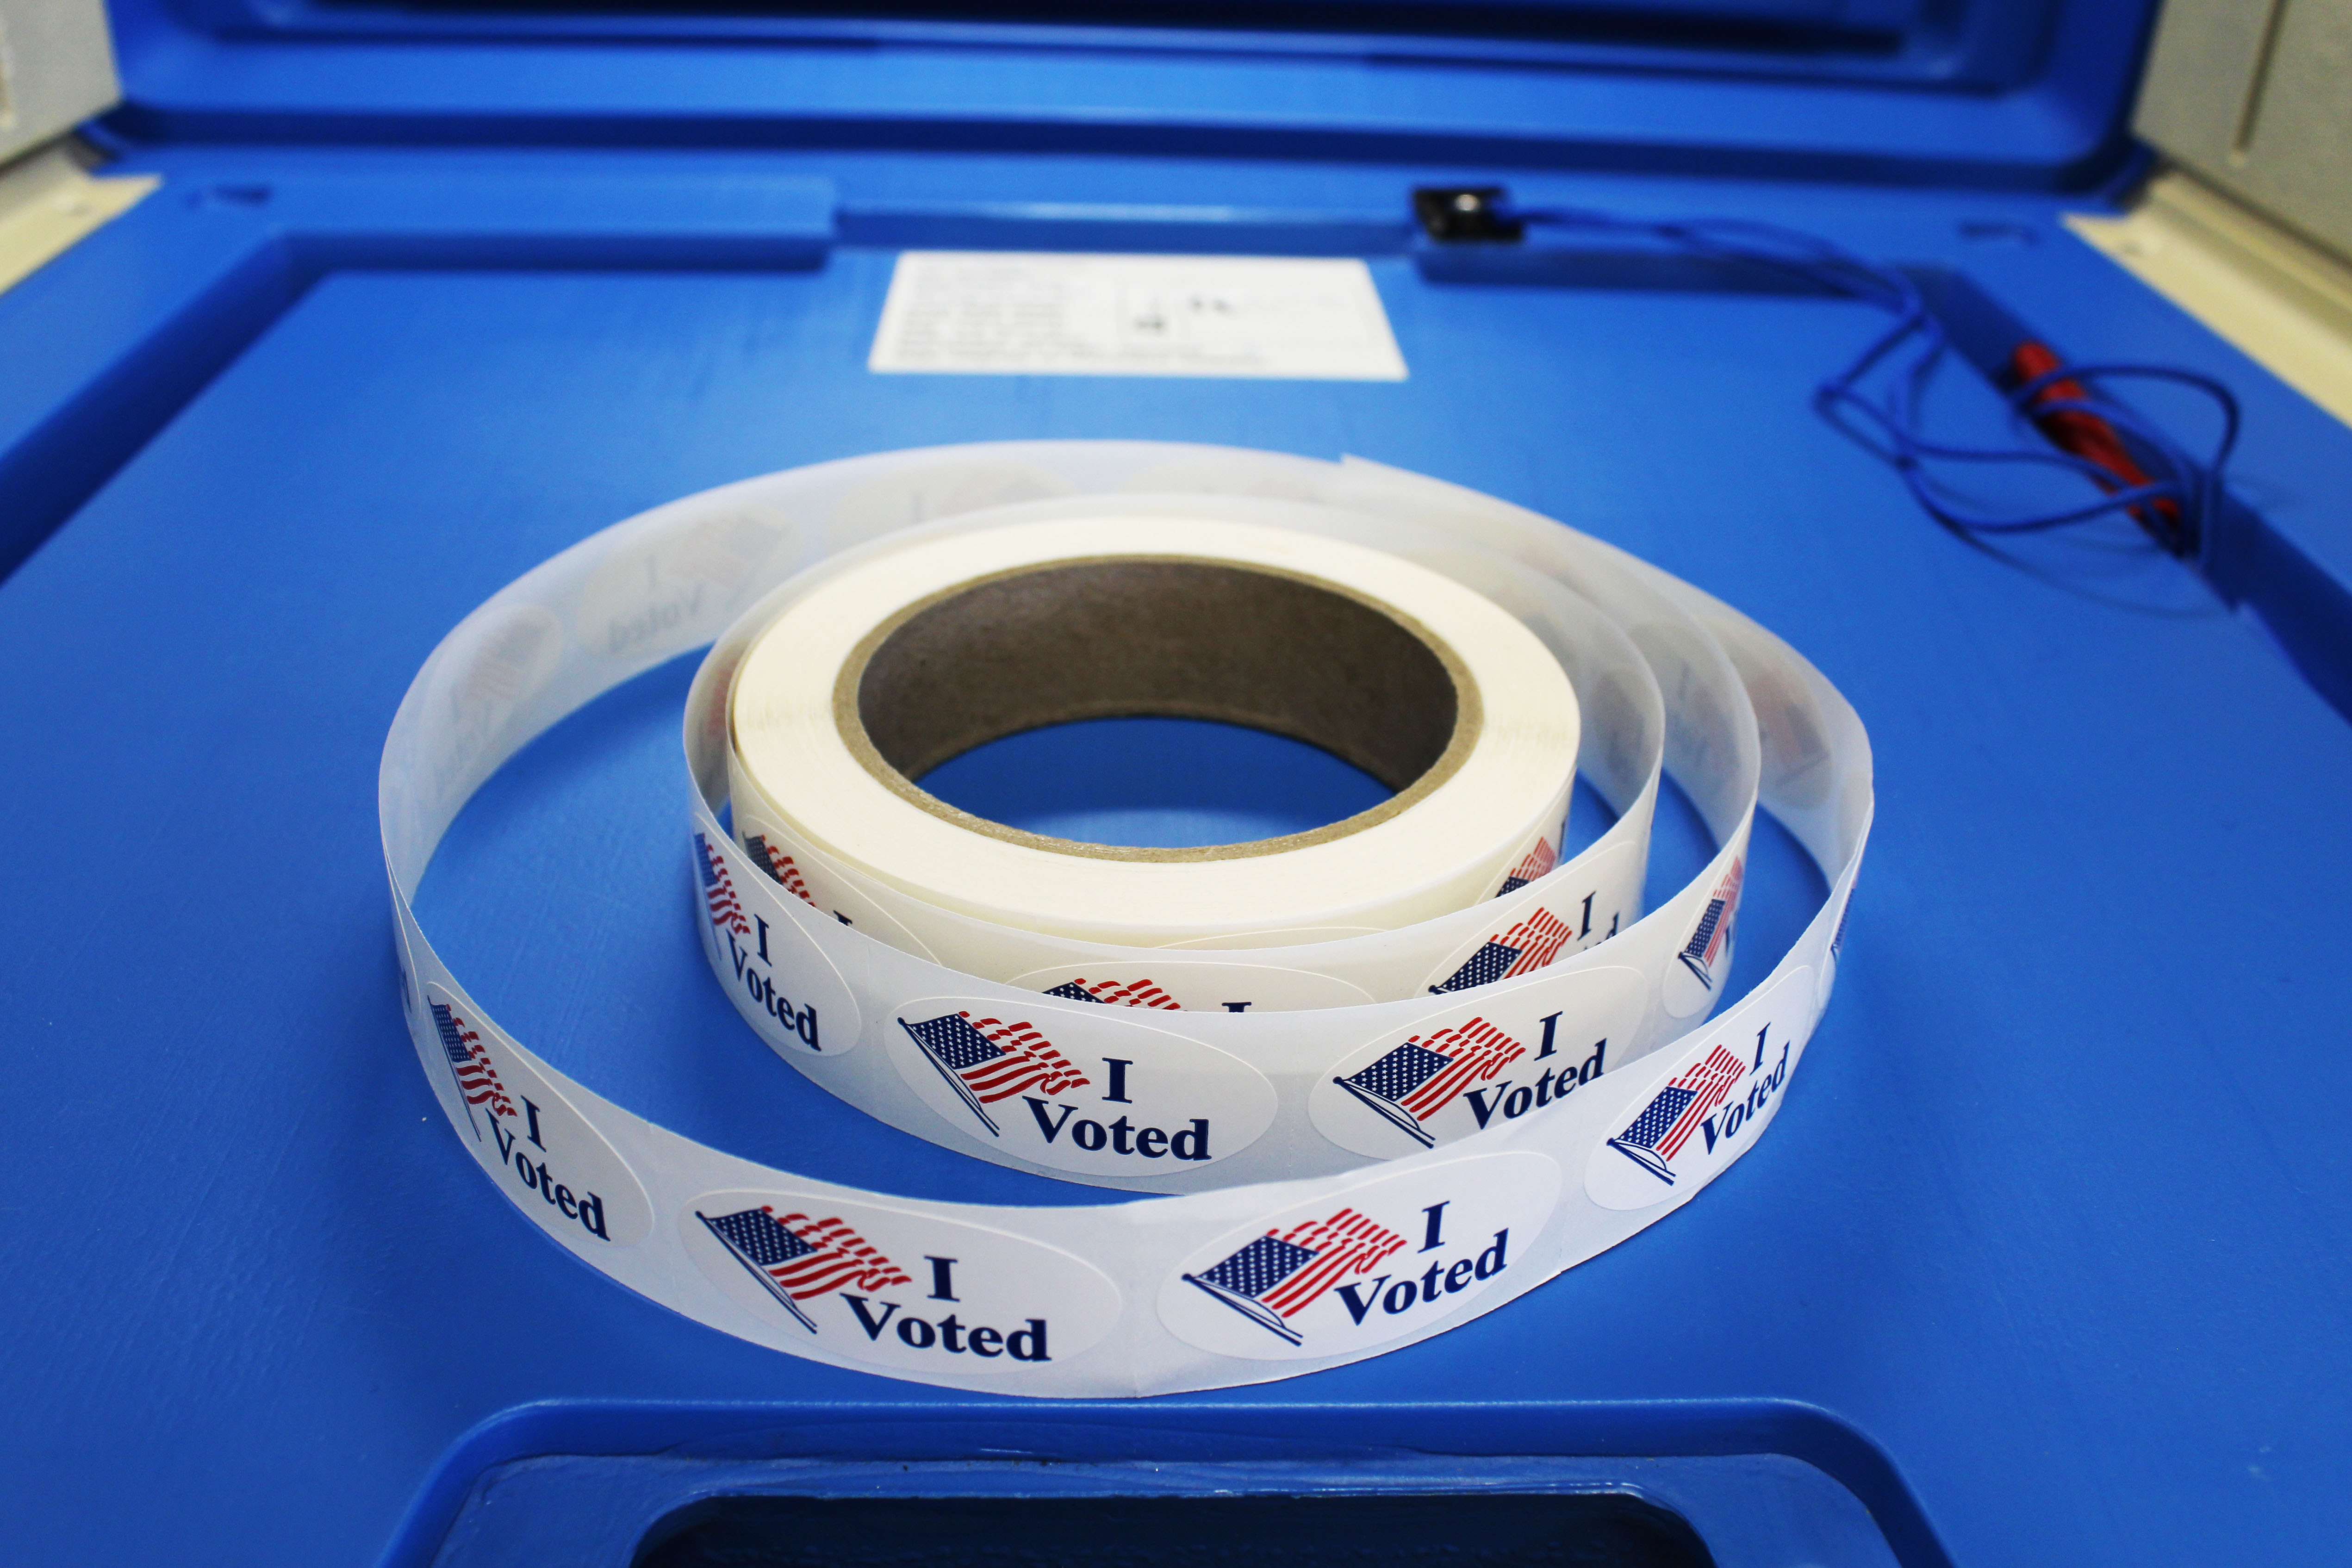 """A roll of """"I voted"""" stickers designed with the American flag is placed on the writing surface of a blue voting booth."""